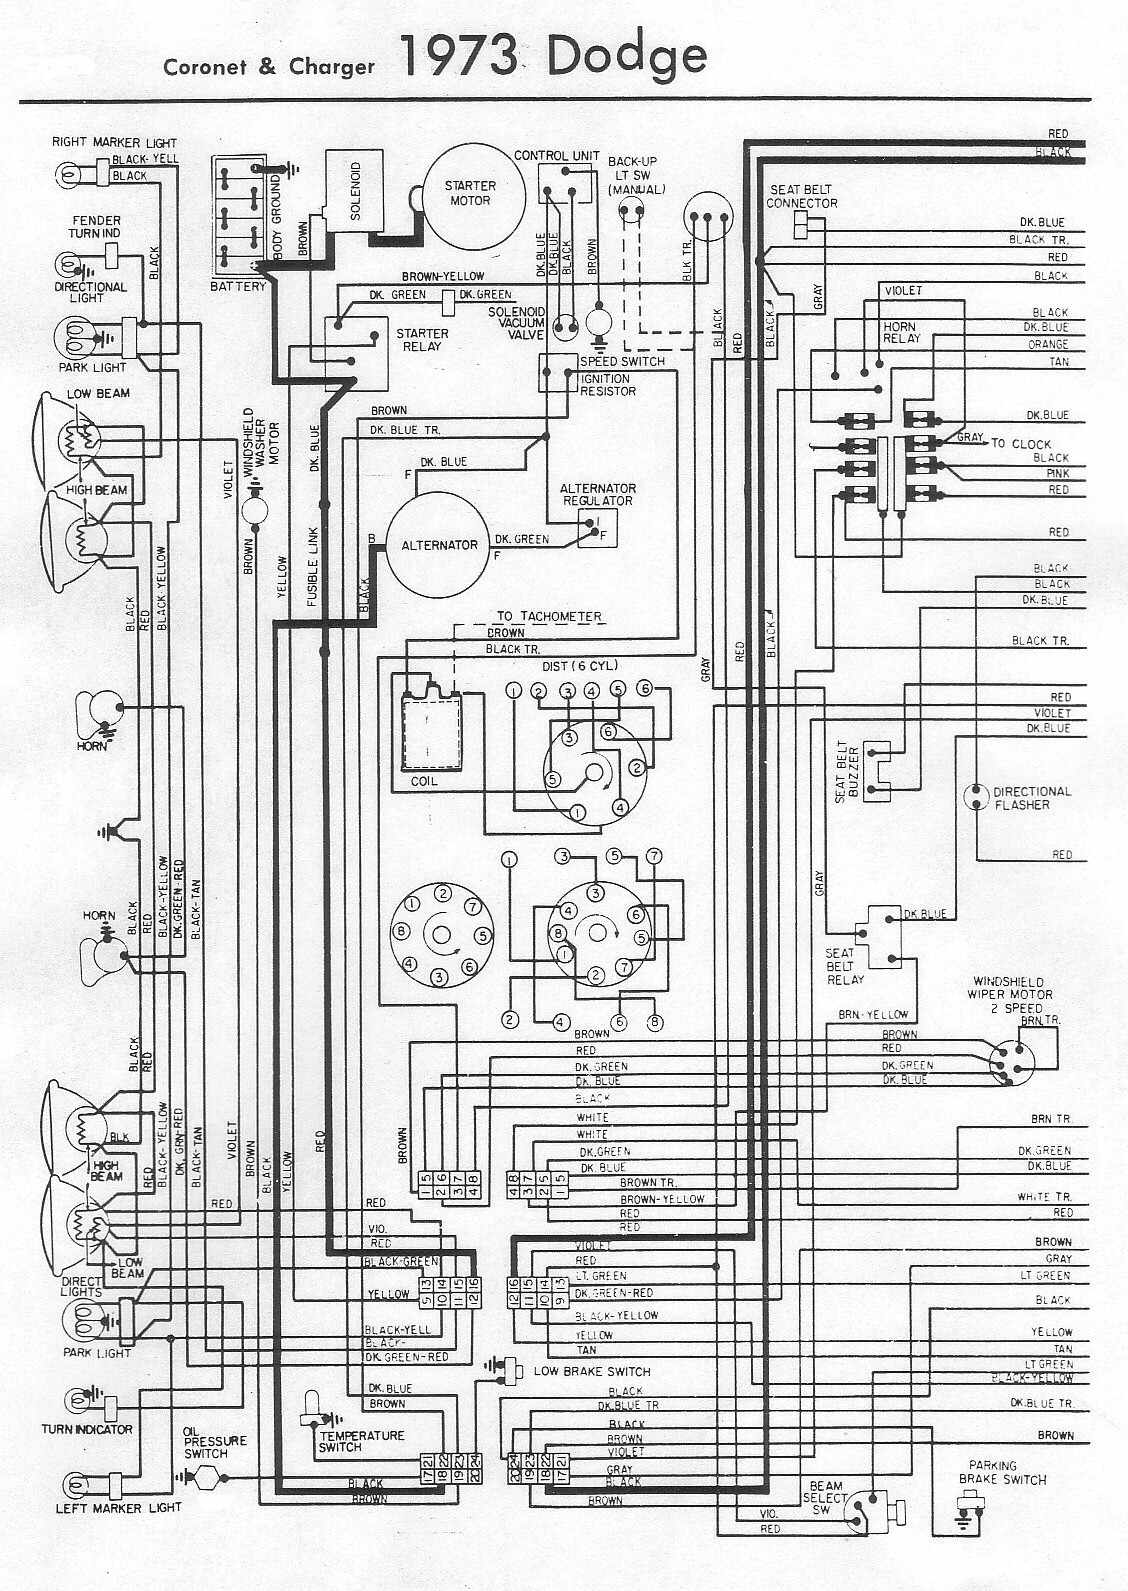 Fucken 2012 Dodge Challenger Wiring Diagram 1973 Charger Alternator Diagrams 45 Fuse